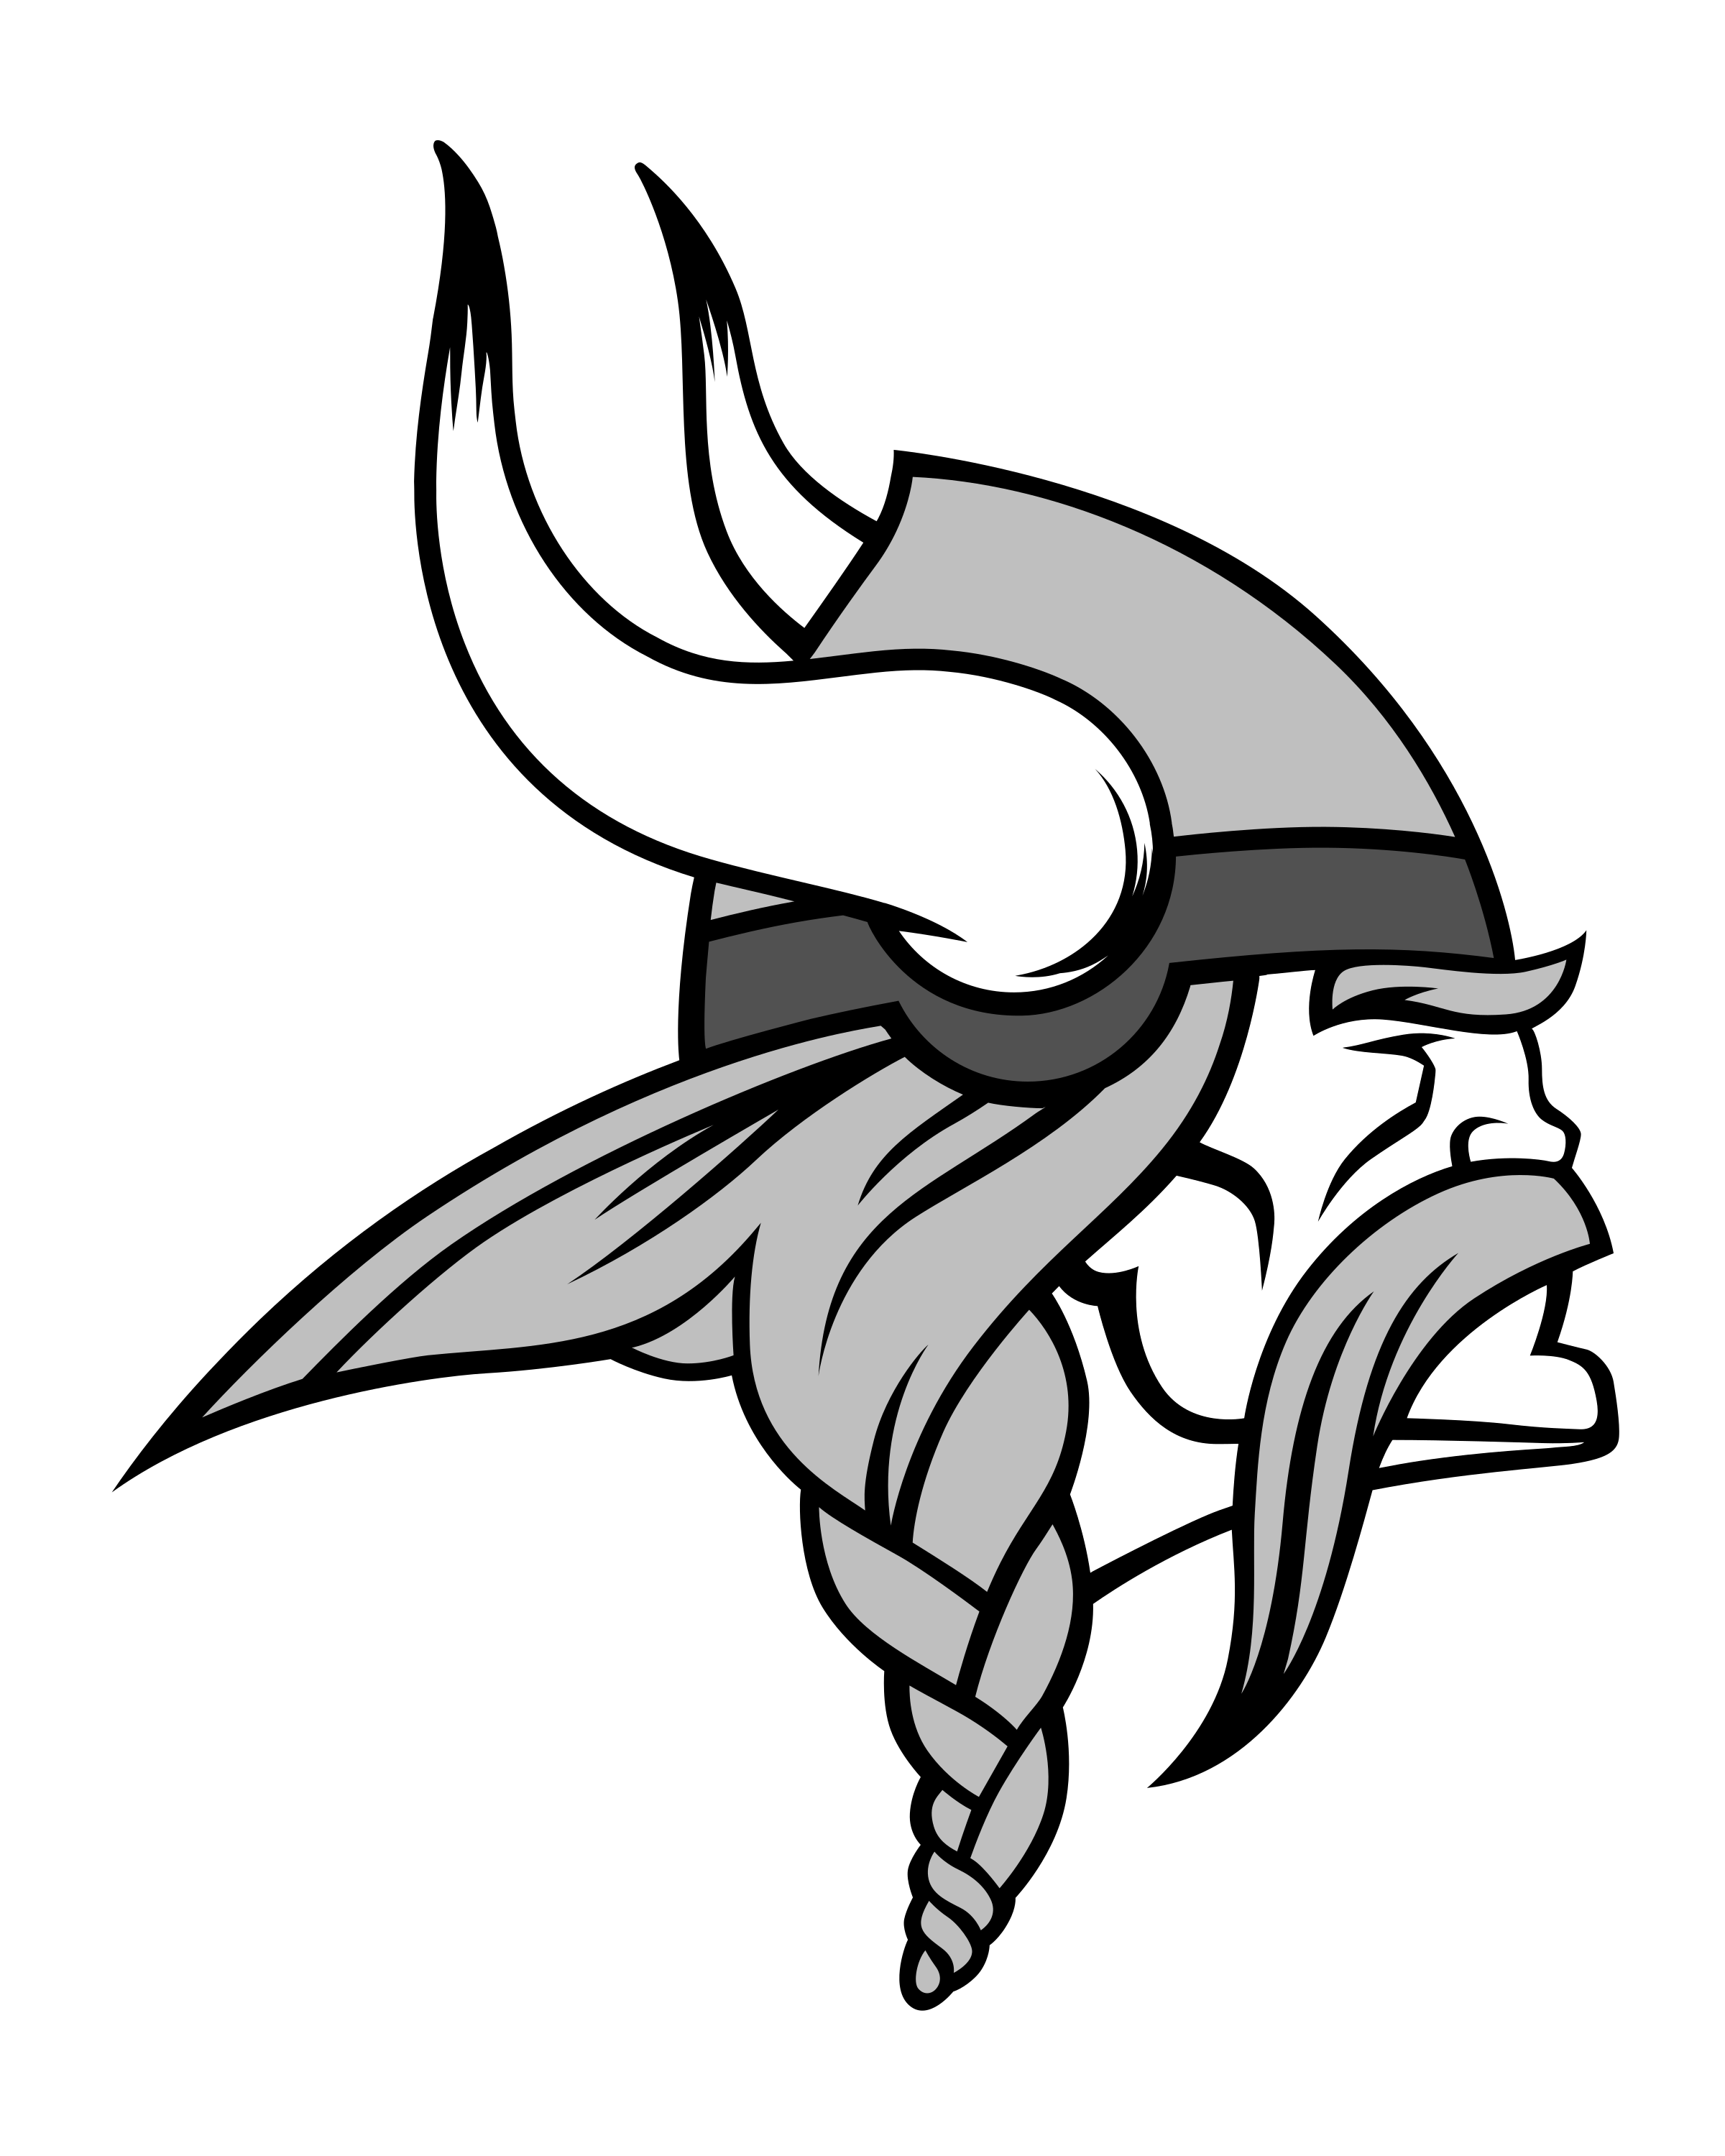 minnesota vikings logo black and white steelers logo stencil clipart free download on clipartmag minnesota and black white logo vikings